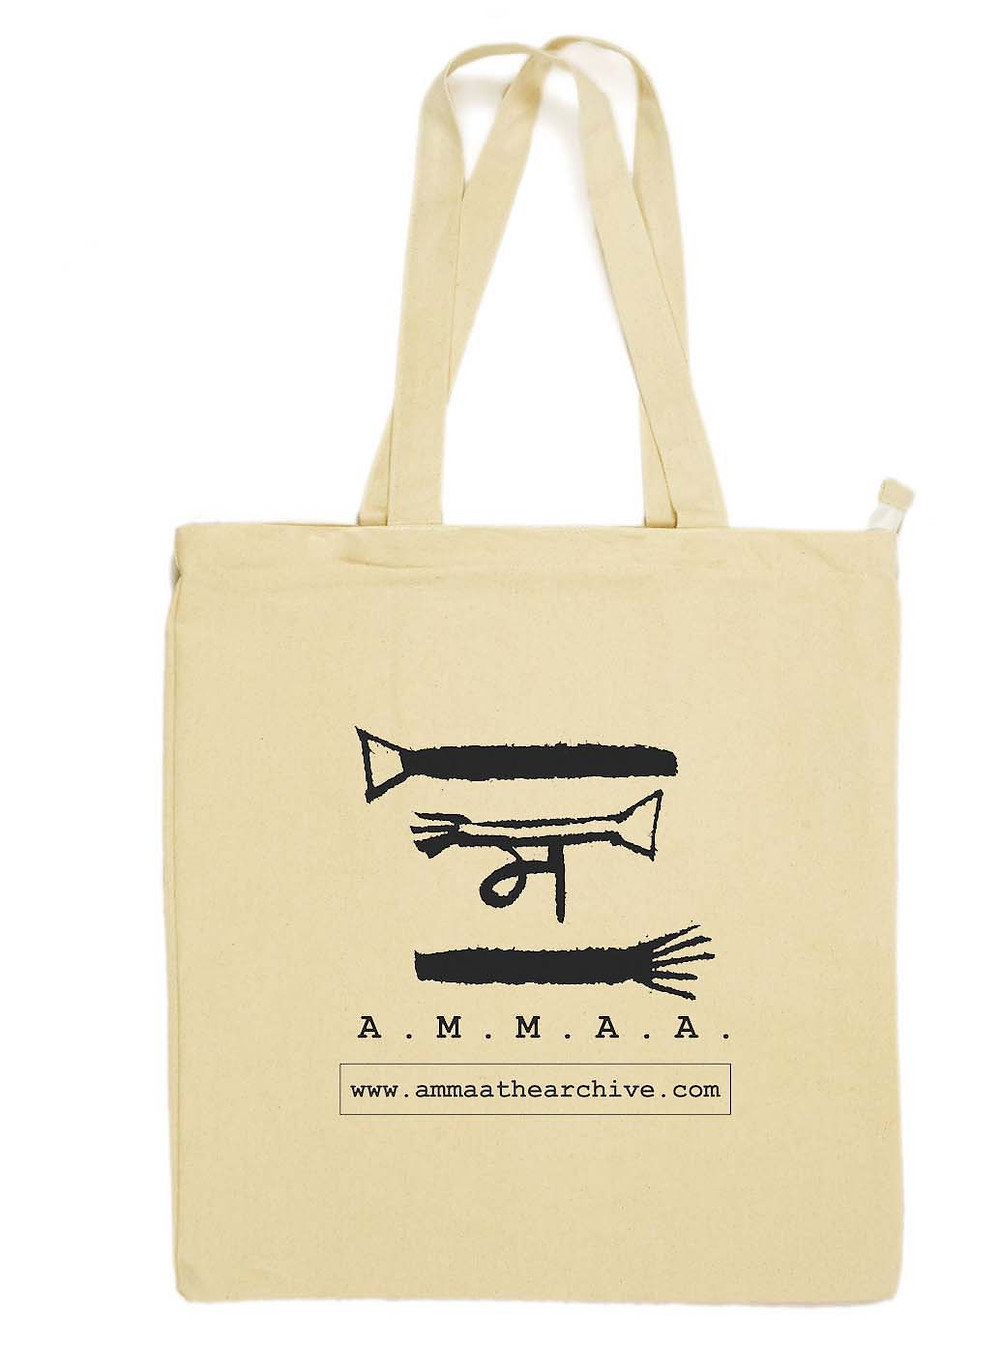 Earthworks canvas tote customised for A.M.M.A.A